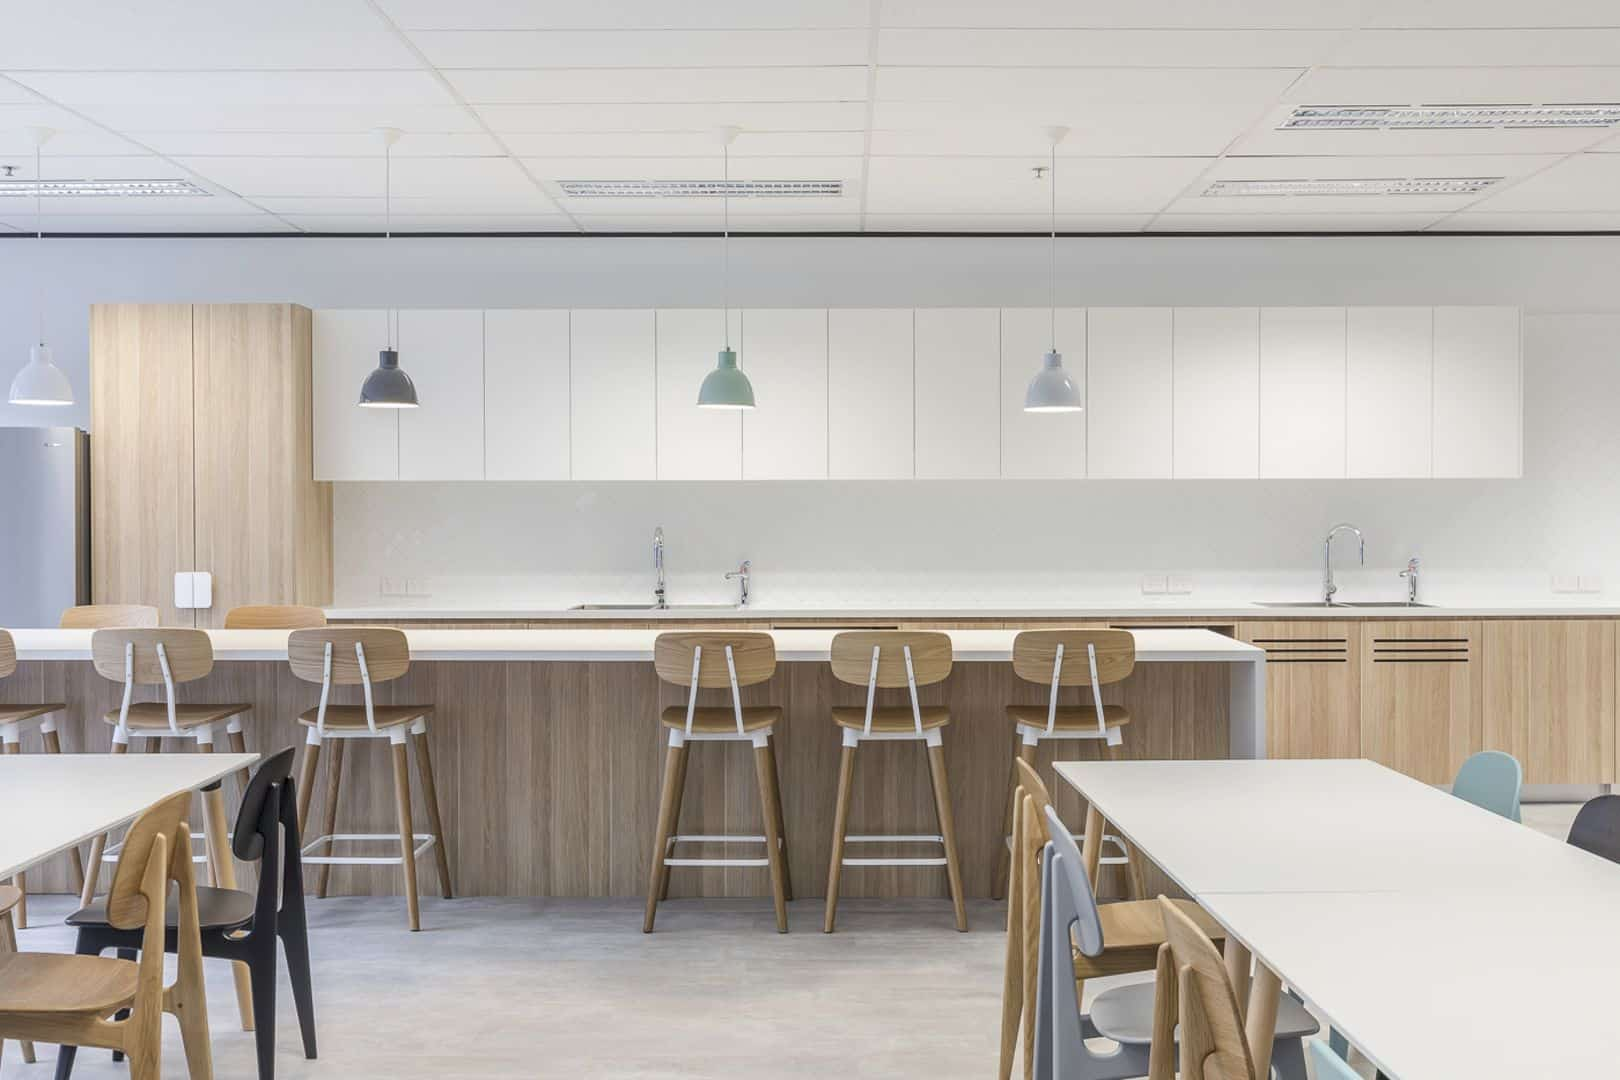 Reckon Sydney: A Head Office of Accounting Software Company with Open, Clean and Inviting Space